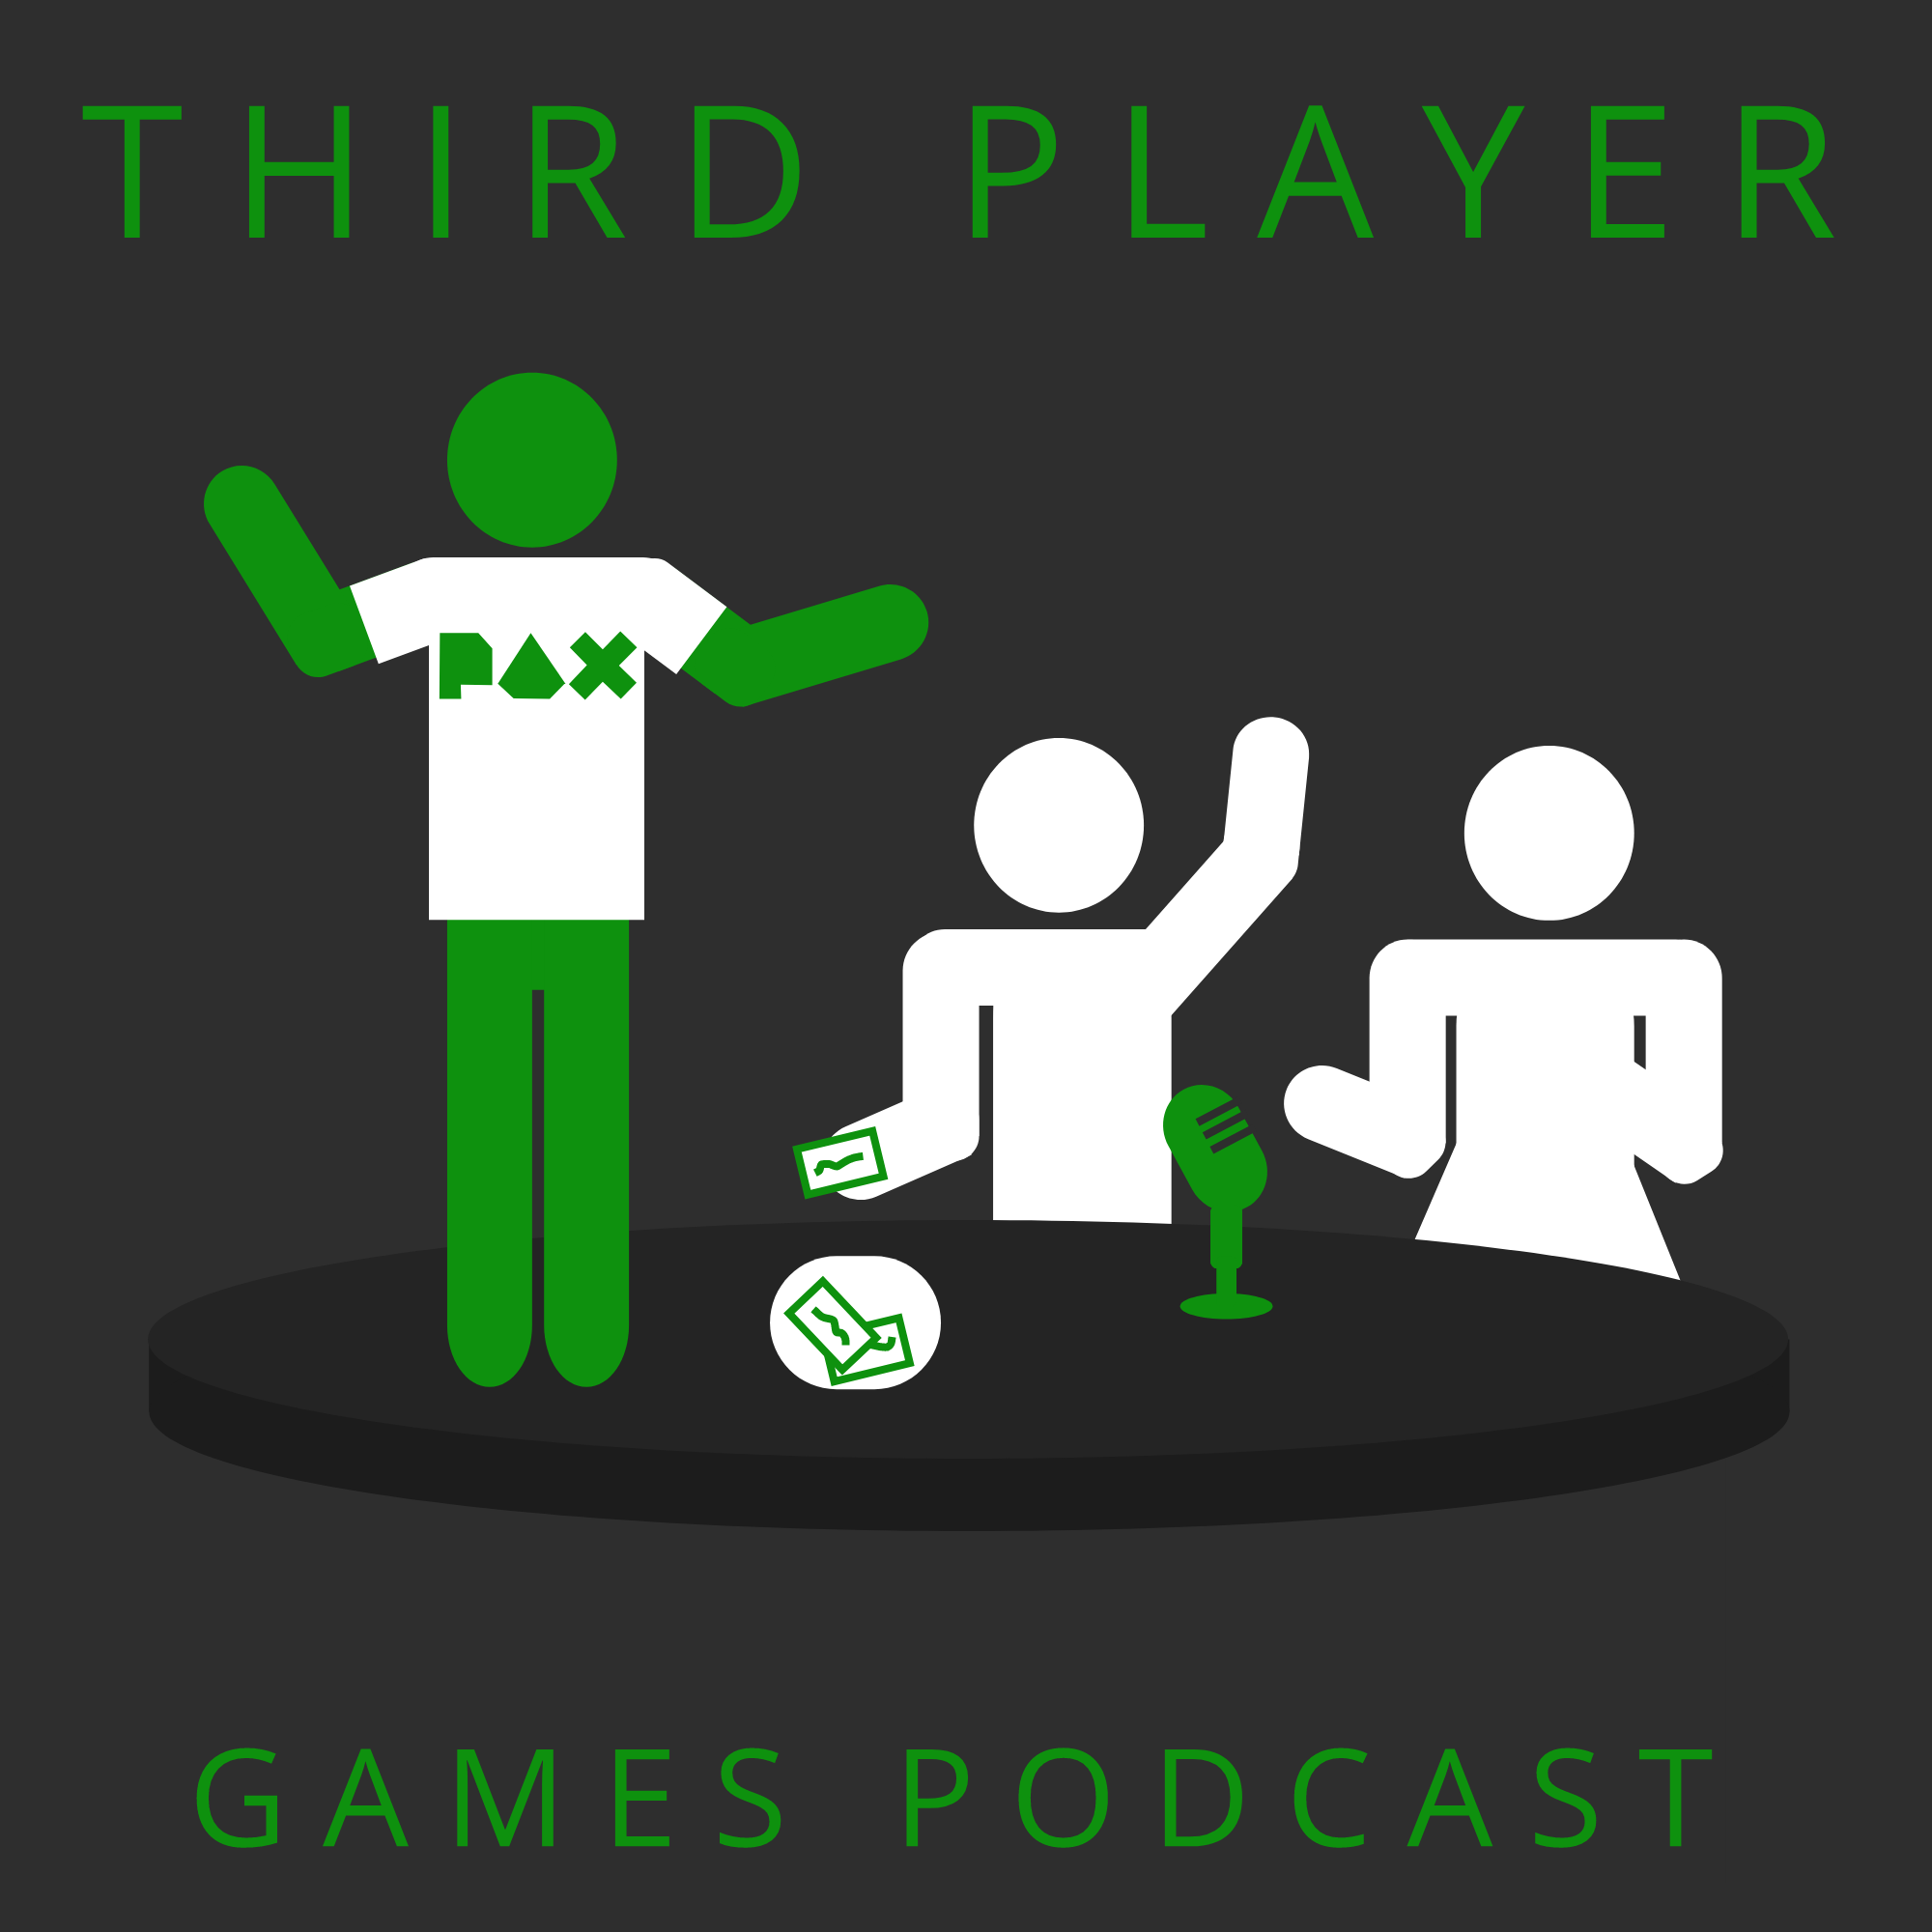 PAX South - Third Player Games Podcast (Ep. 7)